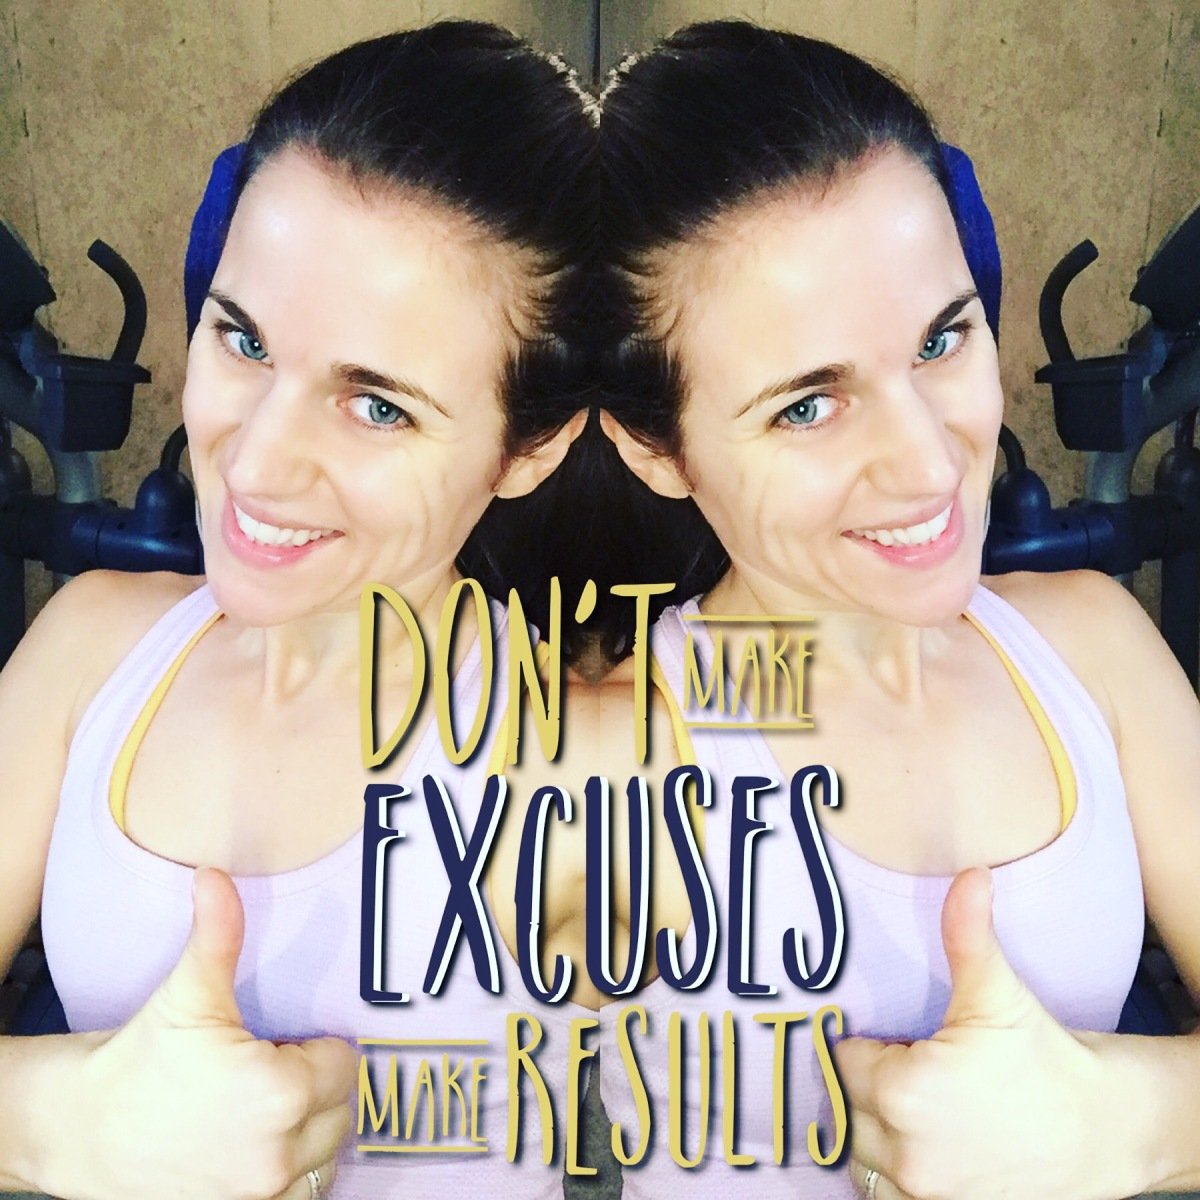 Maegan Blinka, Megan Blinka, Top Coach, Elite Coach, Elite top Beachbody Coach, Sneak Peek into Coaching, Coach Training Academy, Live Sneak Peek into Coaching event, SAHM opportunities, Work from home Fitness Opportunities, Fitness Business, How to create a 6 figure income from home, Leadership, pay it forward, inspire mom, Fit mom business, Hammer and Chisel, Week 7 hammer and chisel